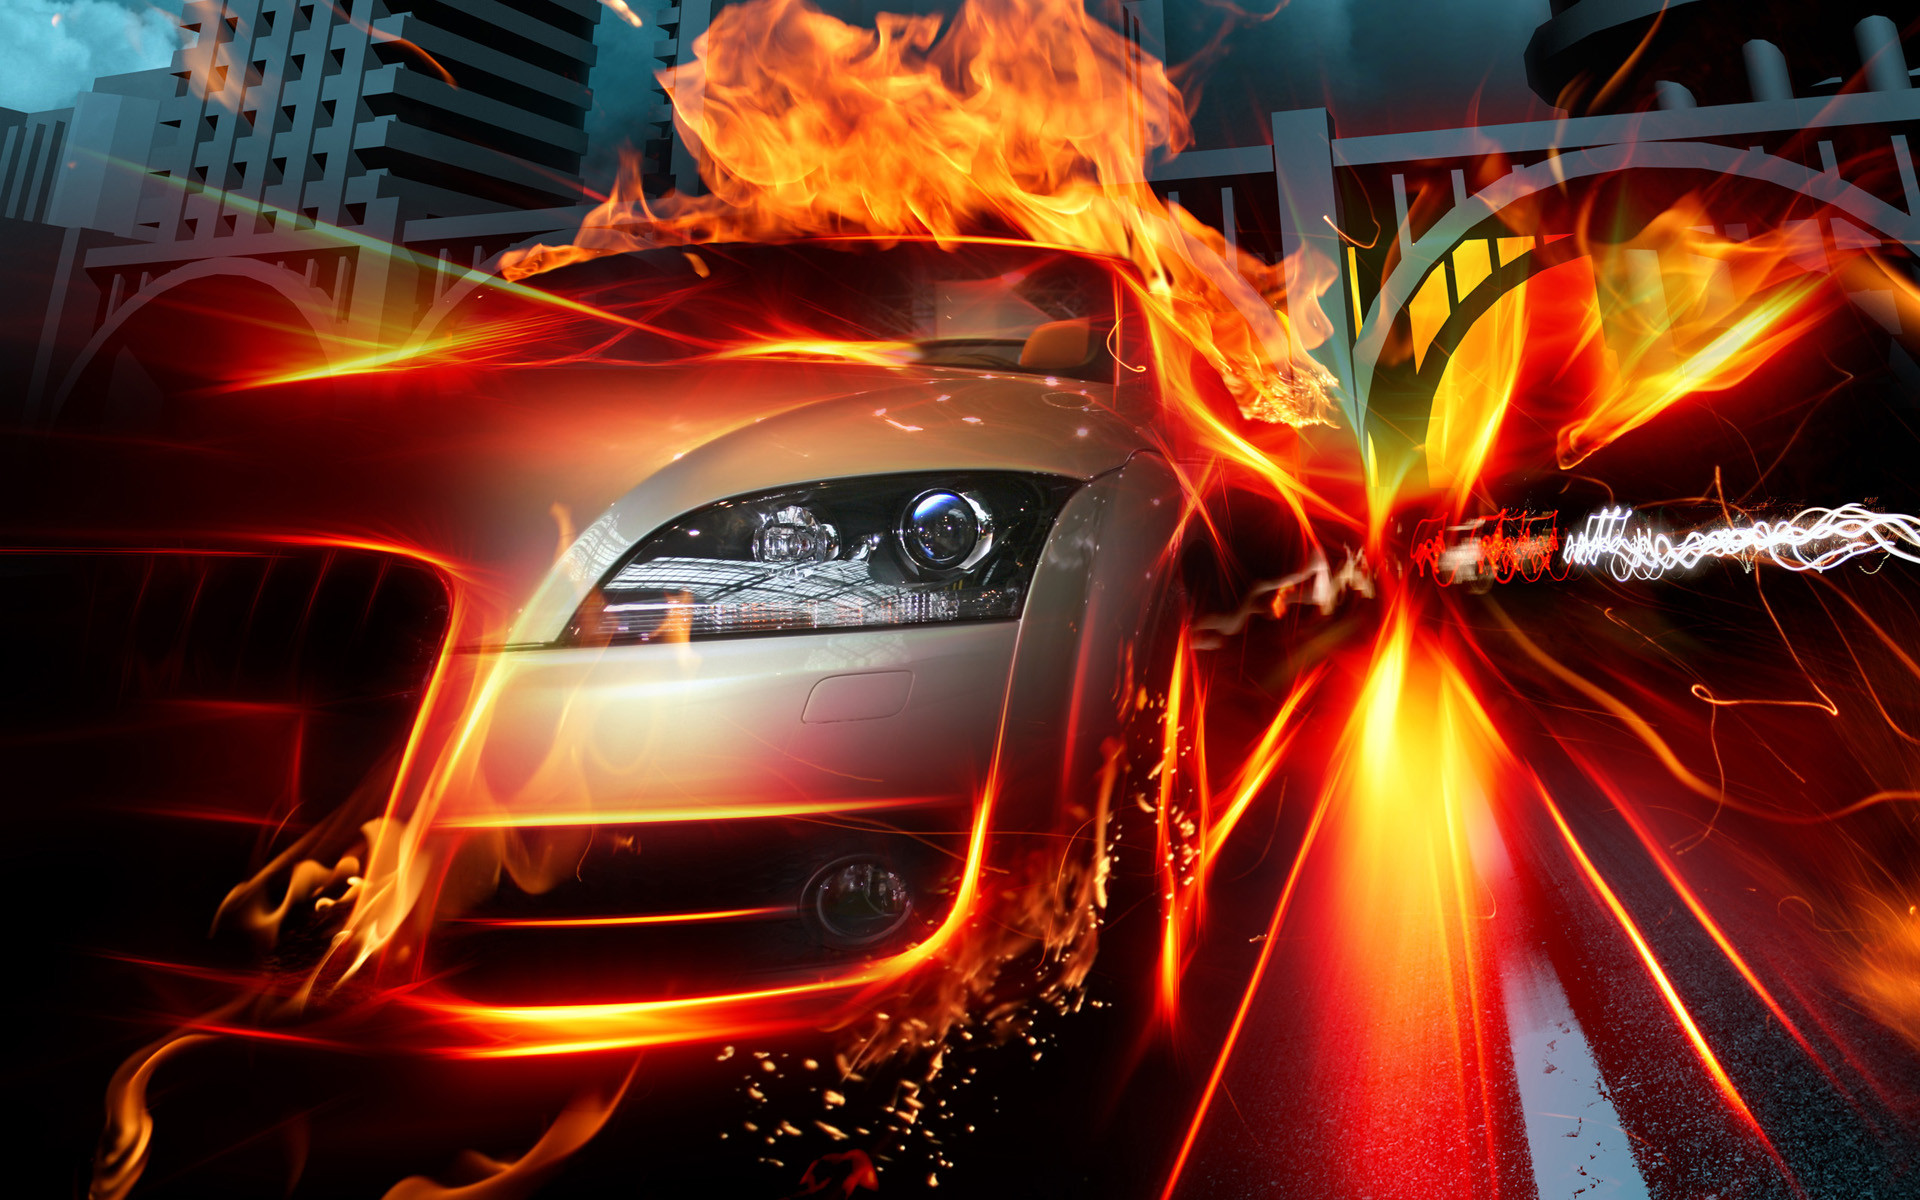 Photography - Manipulation  - Vehicle - Flame - Ride - Urban - Fantasy Wallpaper